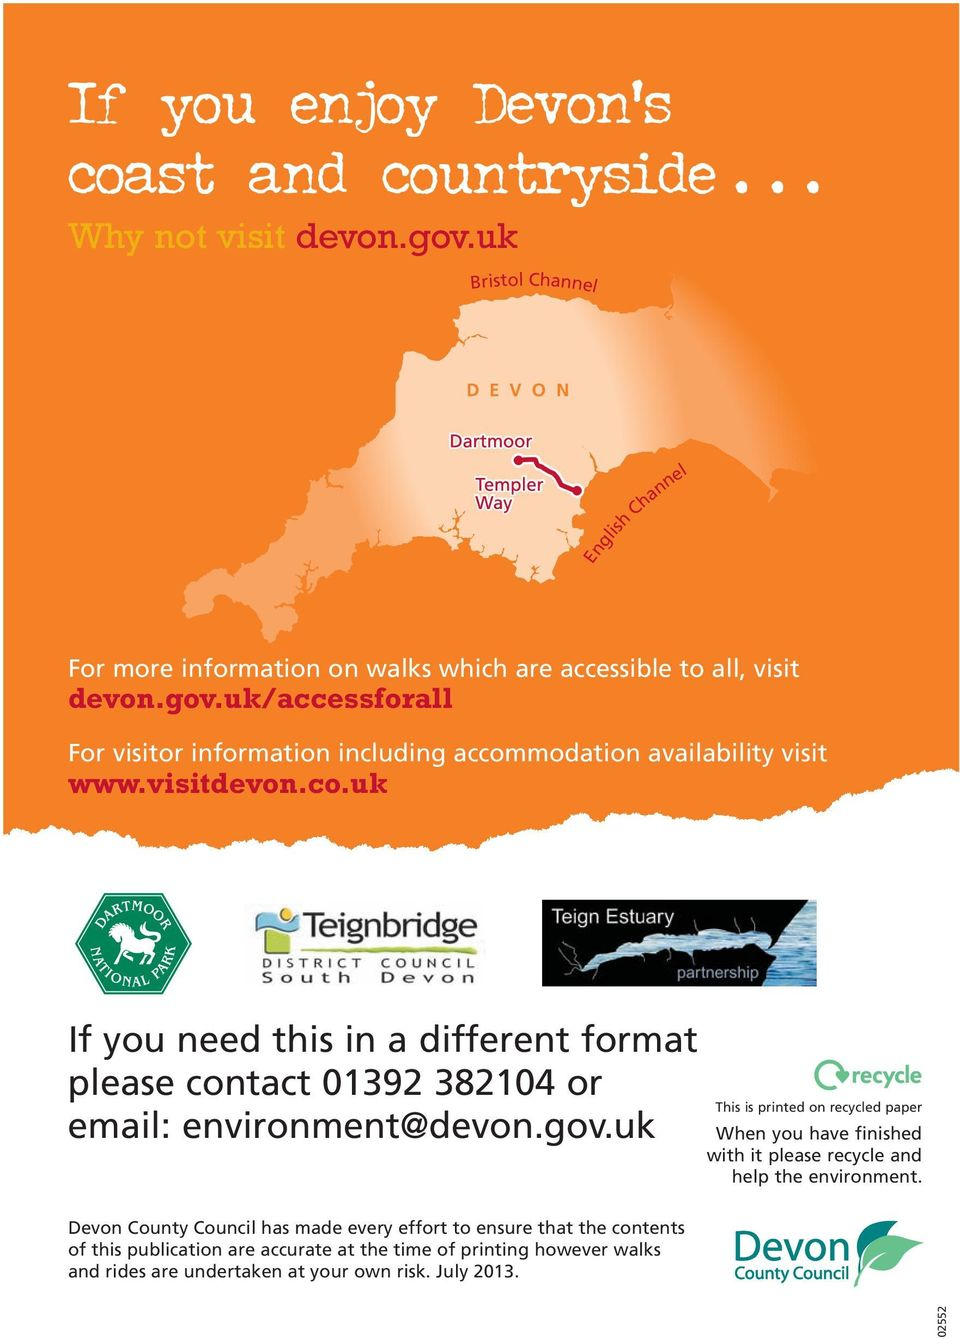 uk/accessforall For vstor nformaton ncludng accommodaton avalablty vst www.vstdevon.co.uk If you need ths n a dfferent format please contact 01392 382104 or emal: envronment@devon.